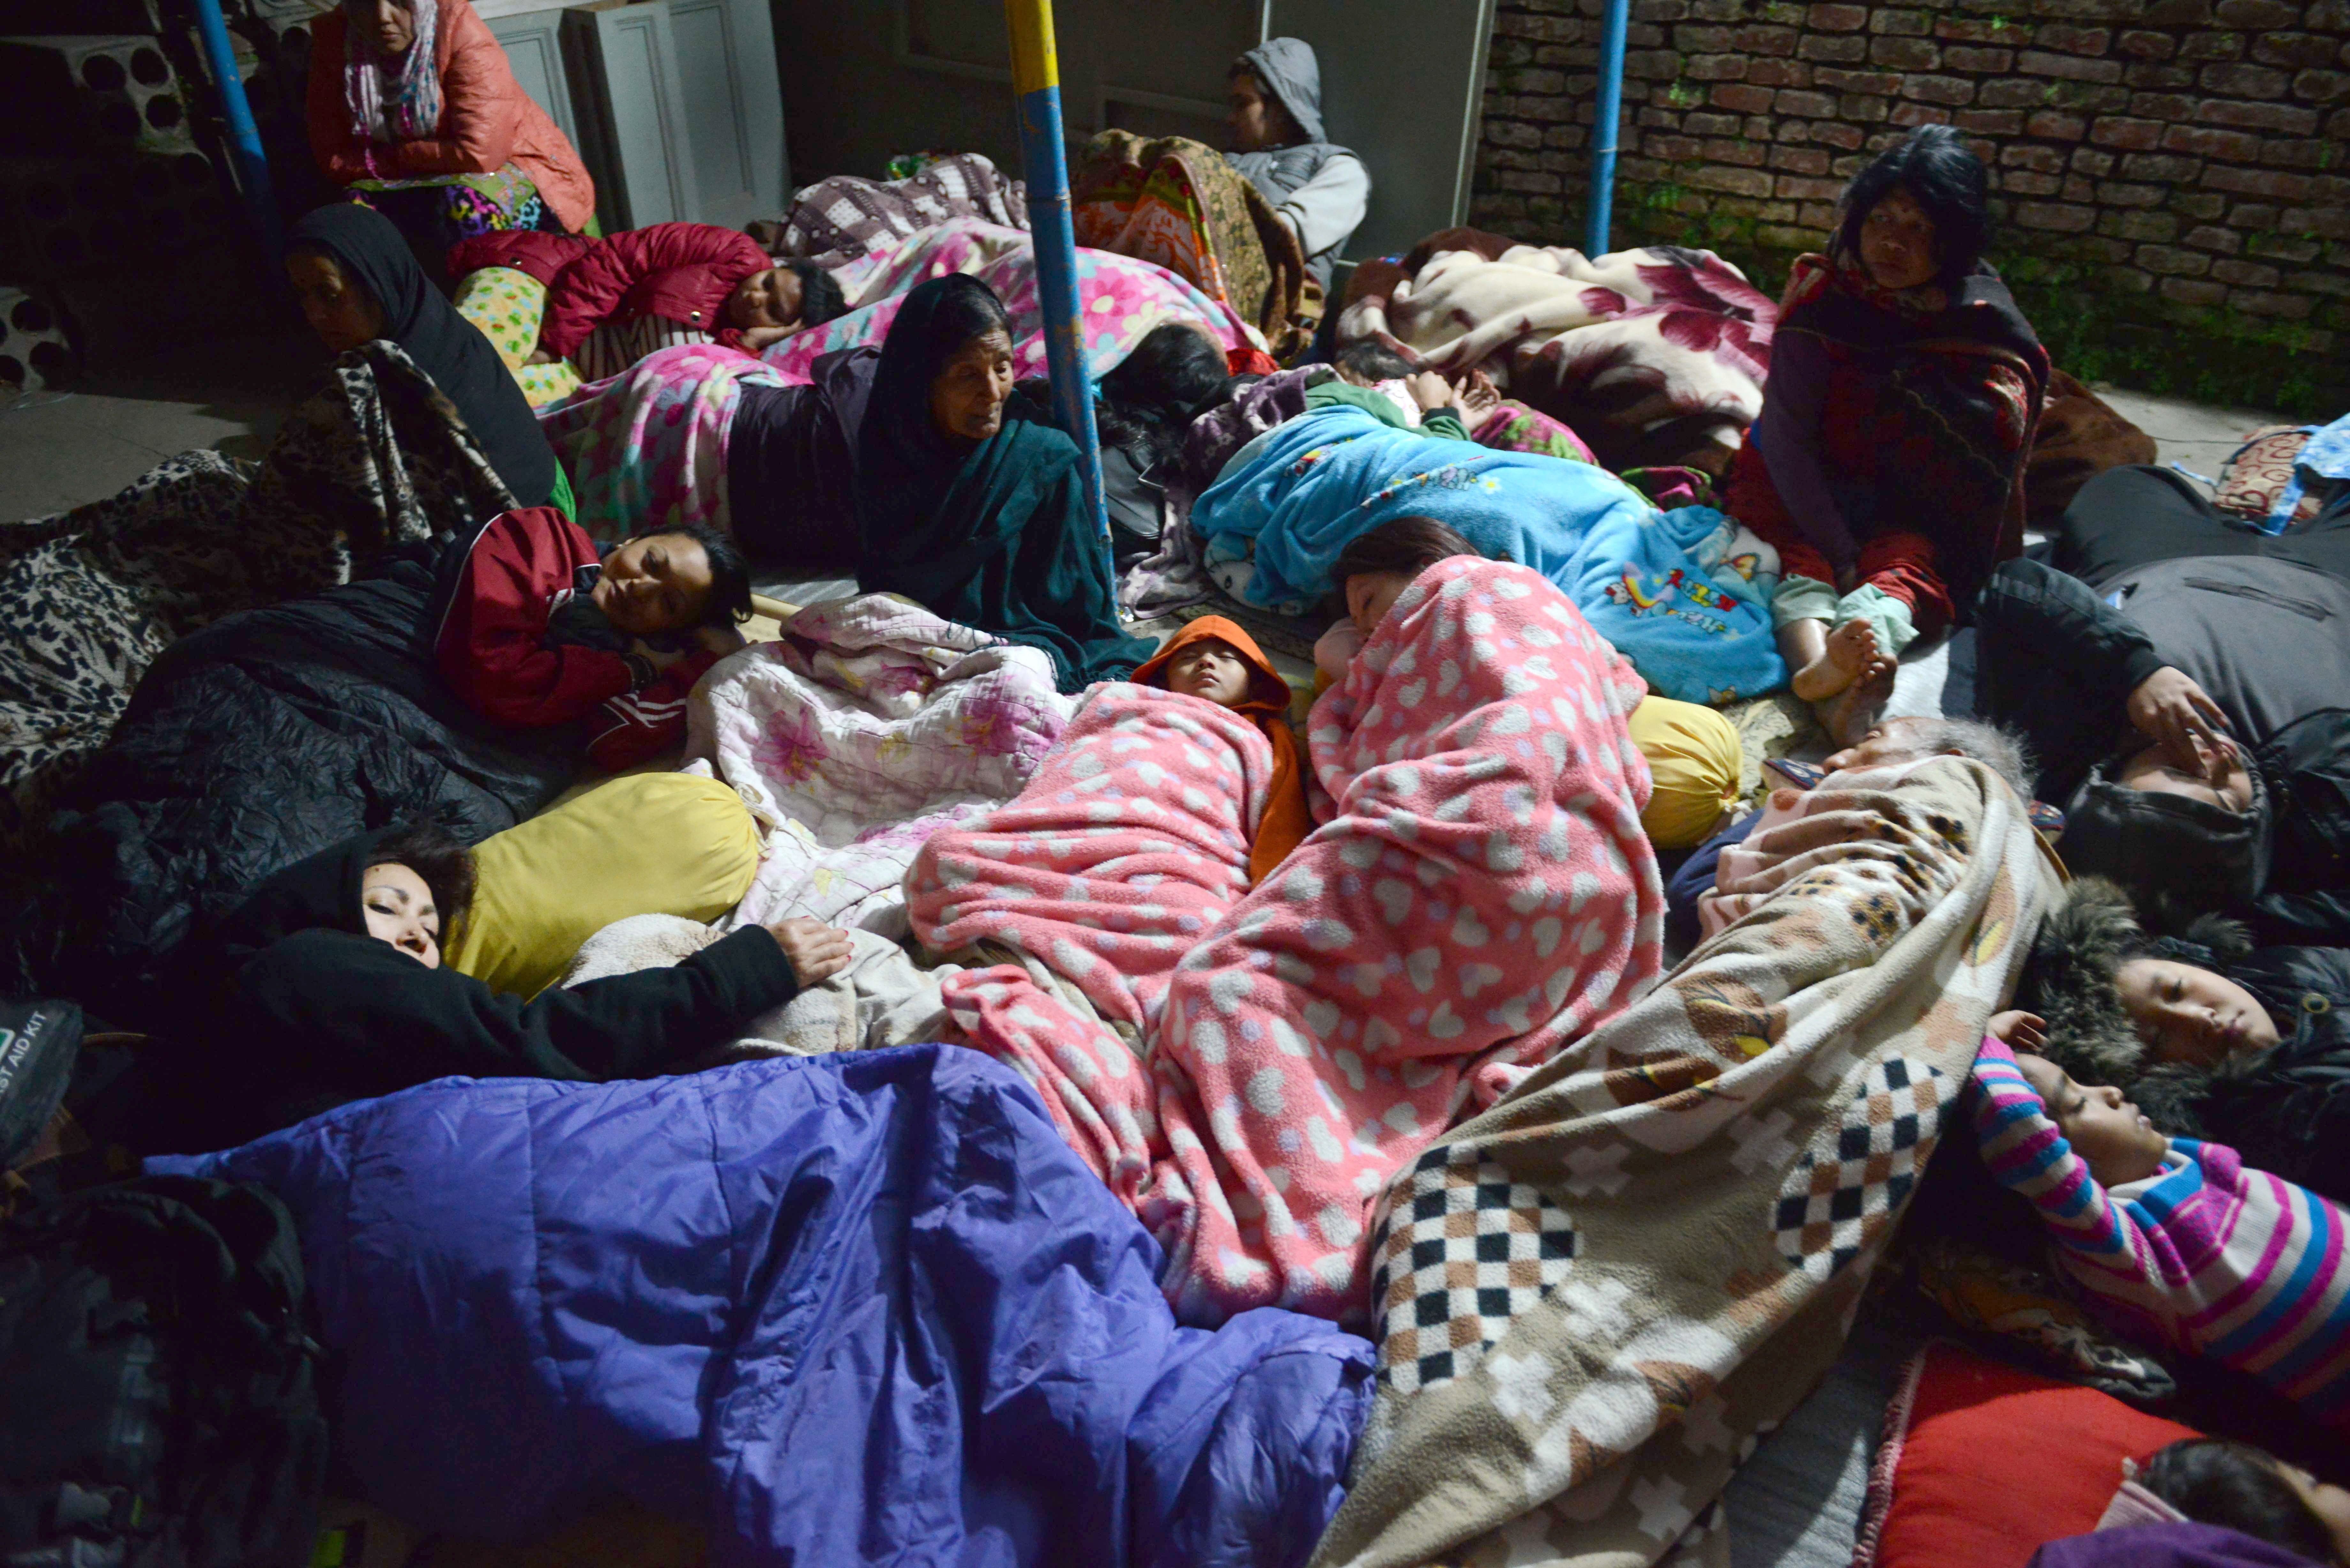 Nepalese residents sleep in an open area in Kathmandu on April 26, 2015, after an earthquake hit the Kathmandu Valley. Photo by Prakash Mathema/AFP/Getty Images.